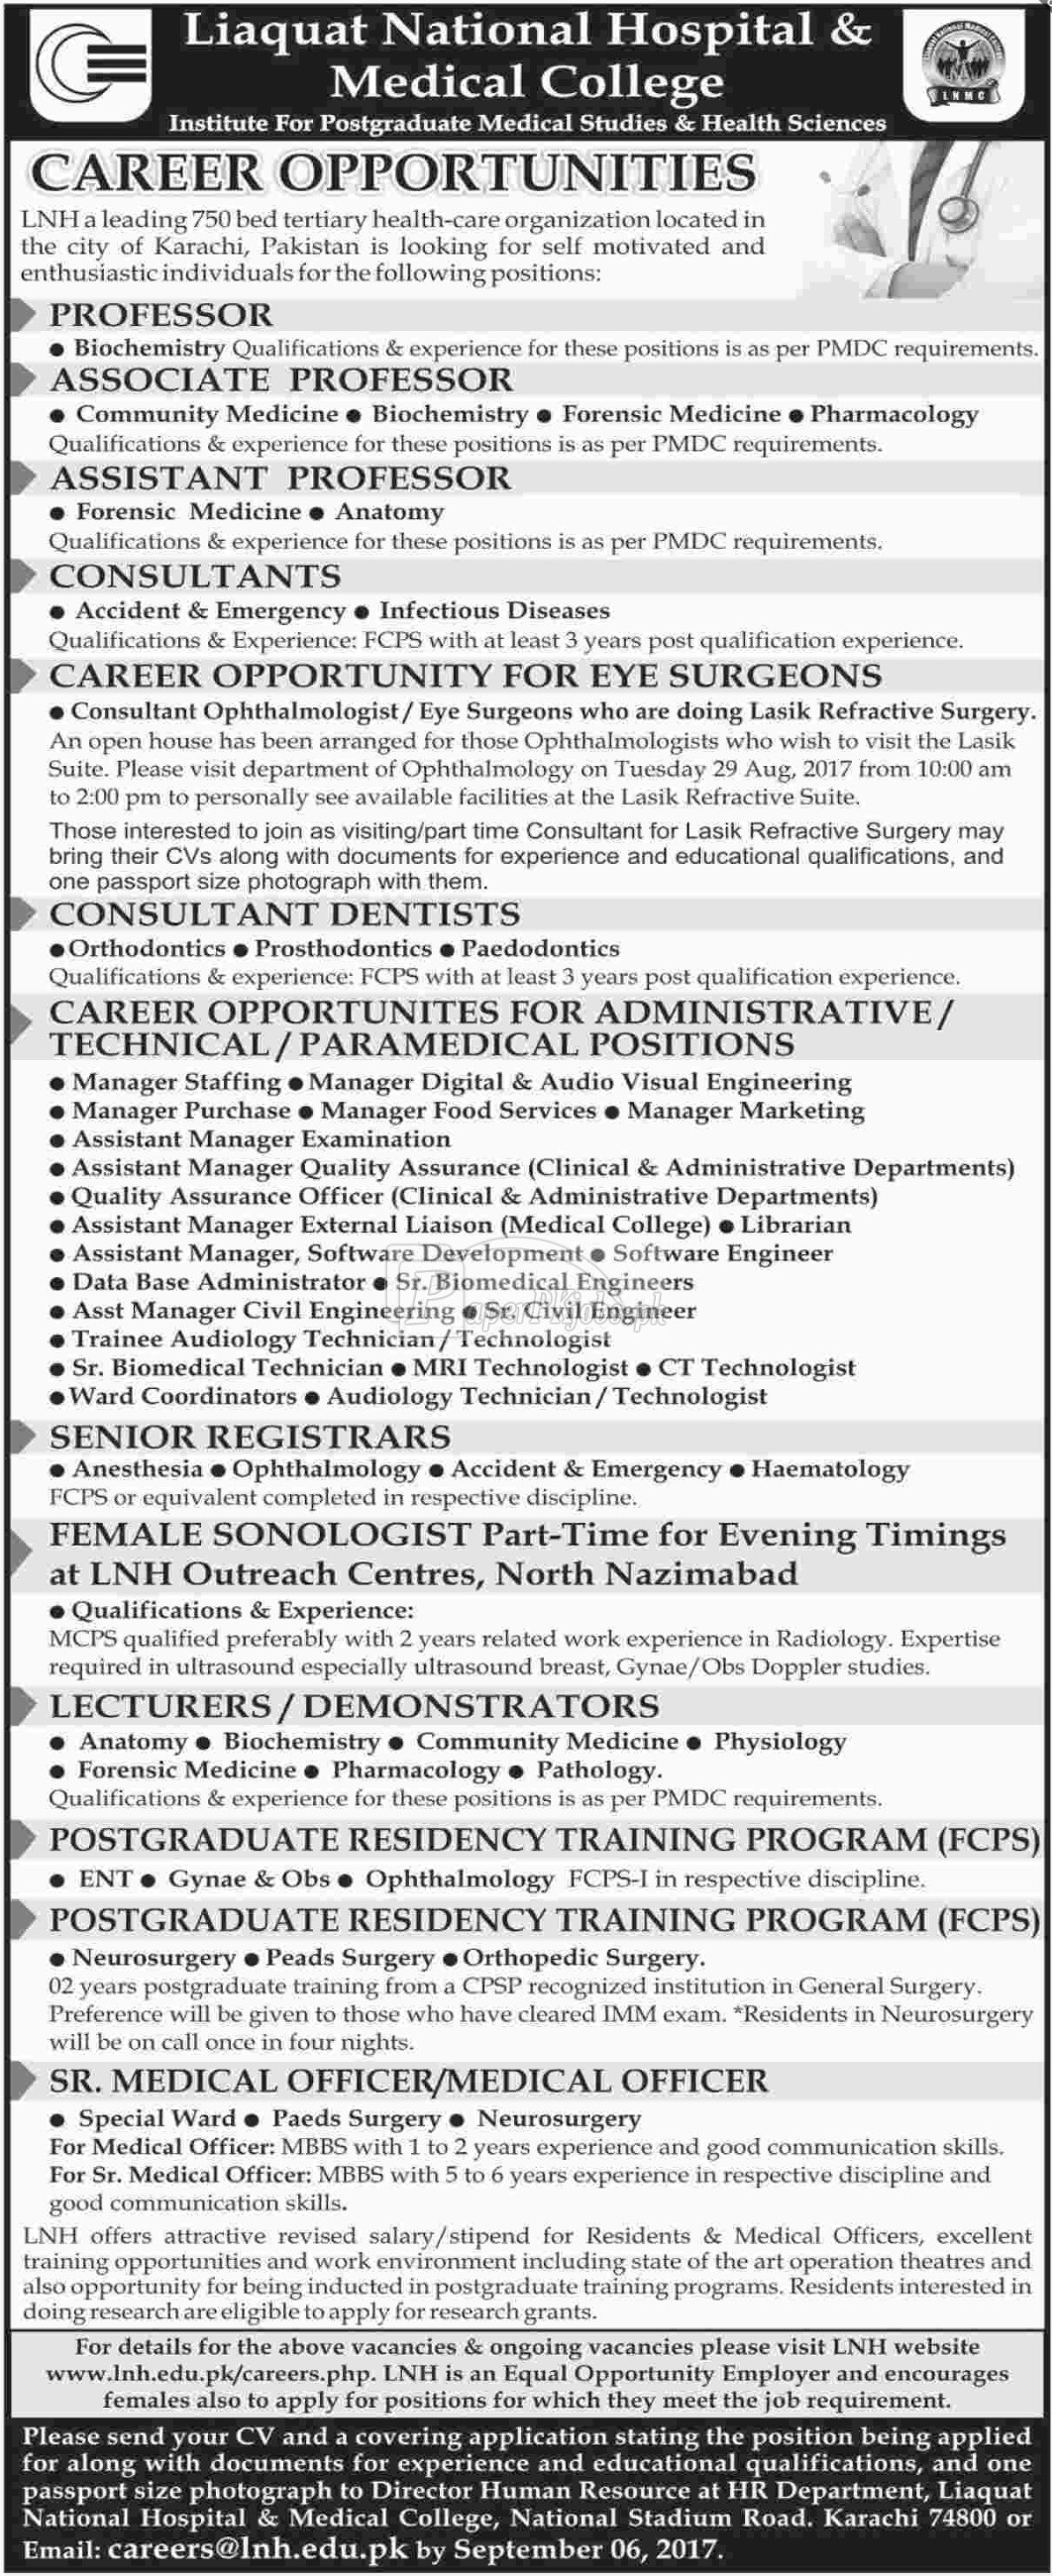 Liaquat National Hospital LNH & Medical College Jobs 2017